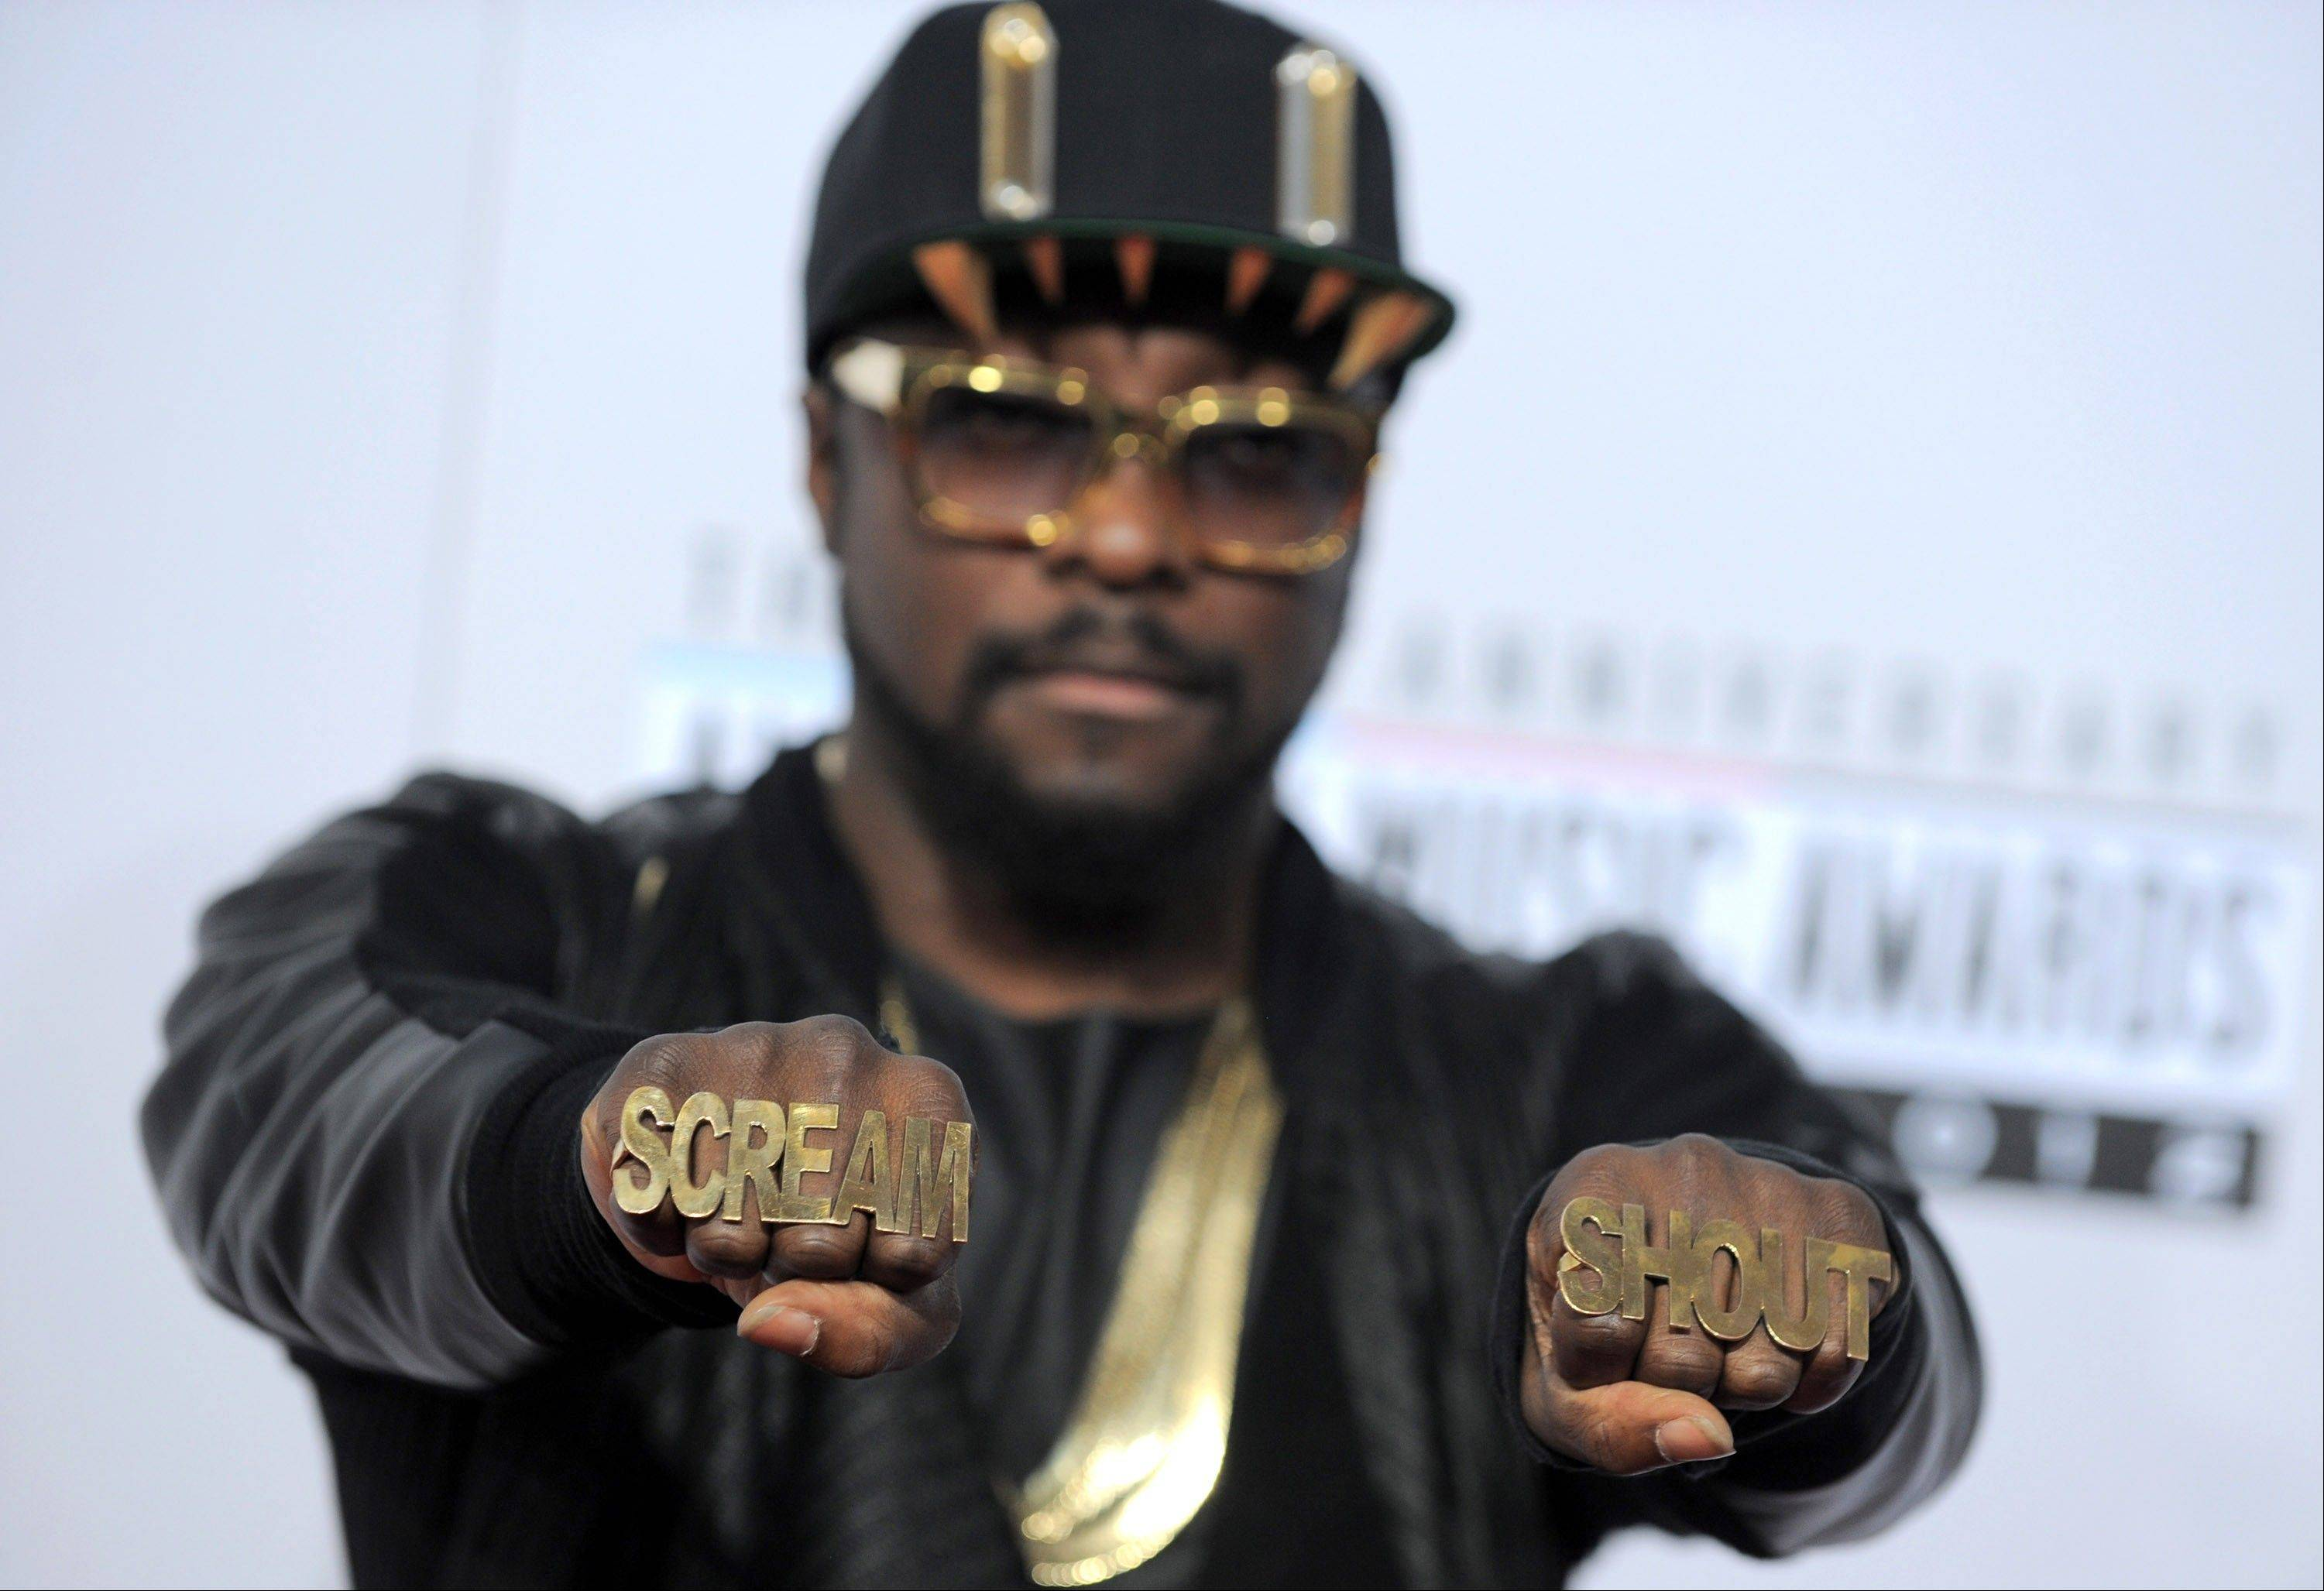 Will.i.am shows off his hardware while walking the press line ahead of the AMAs.